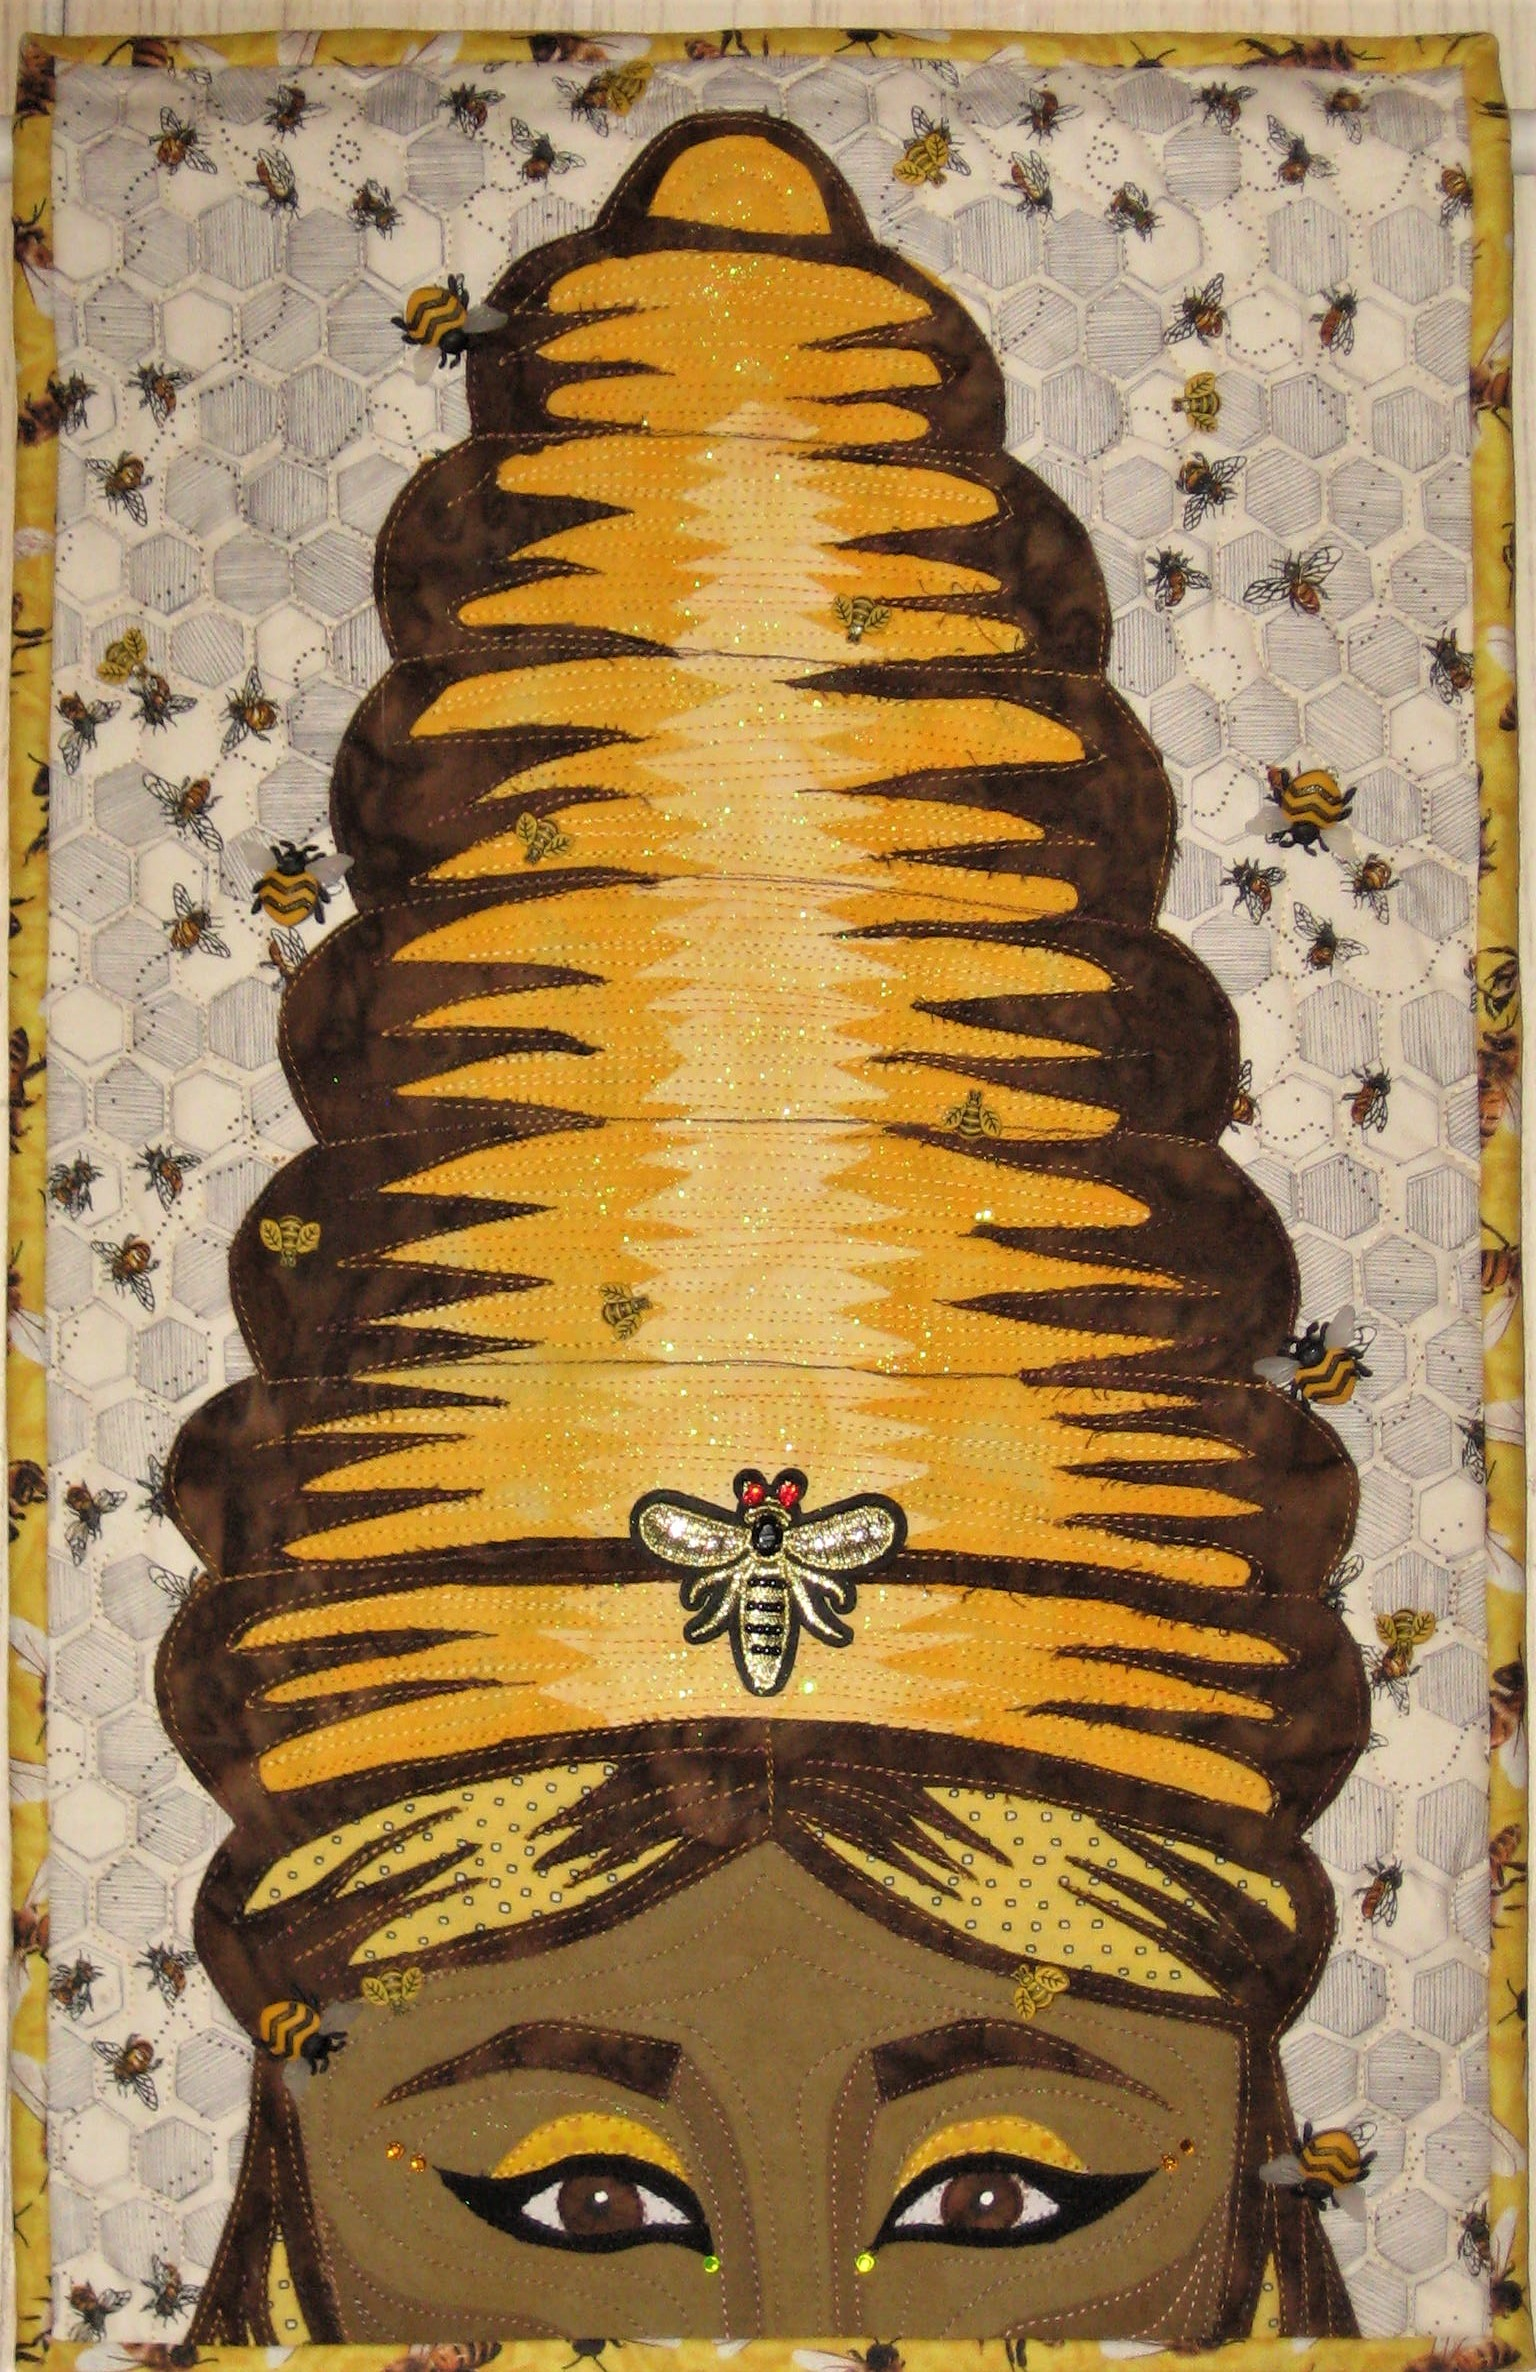 Today is reveal day for my Facebook art quilt group Art Quilts Around The World. The theme is BUGS and I chose bees as my bug of choice for two reasons. First, I have a refrigerator magnet with a woman wearing a bee hive hairstyle with bees swarming around her head and, second, I remembered a 2008 movie based on the book The Secret Life of Bees by Sue Monk Kidd. The story is about 3 black women who are sisters in the 1960s who live on a farm and are bee keepers. They run a honey business and their honey is called Black Madonna. Black Madonna represents fertility and motherhood. A white female teenage runaway finds her way to their farm and they take her in. The actresses Queen Latifah, Dakota Fanning, Jennifer Hudson and Alicia Keys are in this movie-check it out!! I love this movie and because of this the woman is my quilt is black.  I Googled to make sure bees are bugs. They are part of the same family of wasps and ants and are know for their pollination abilities.  I chose to take the bee hive idea literal. I found it was easy to find bee themed fabrics and buttons to complete this project.